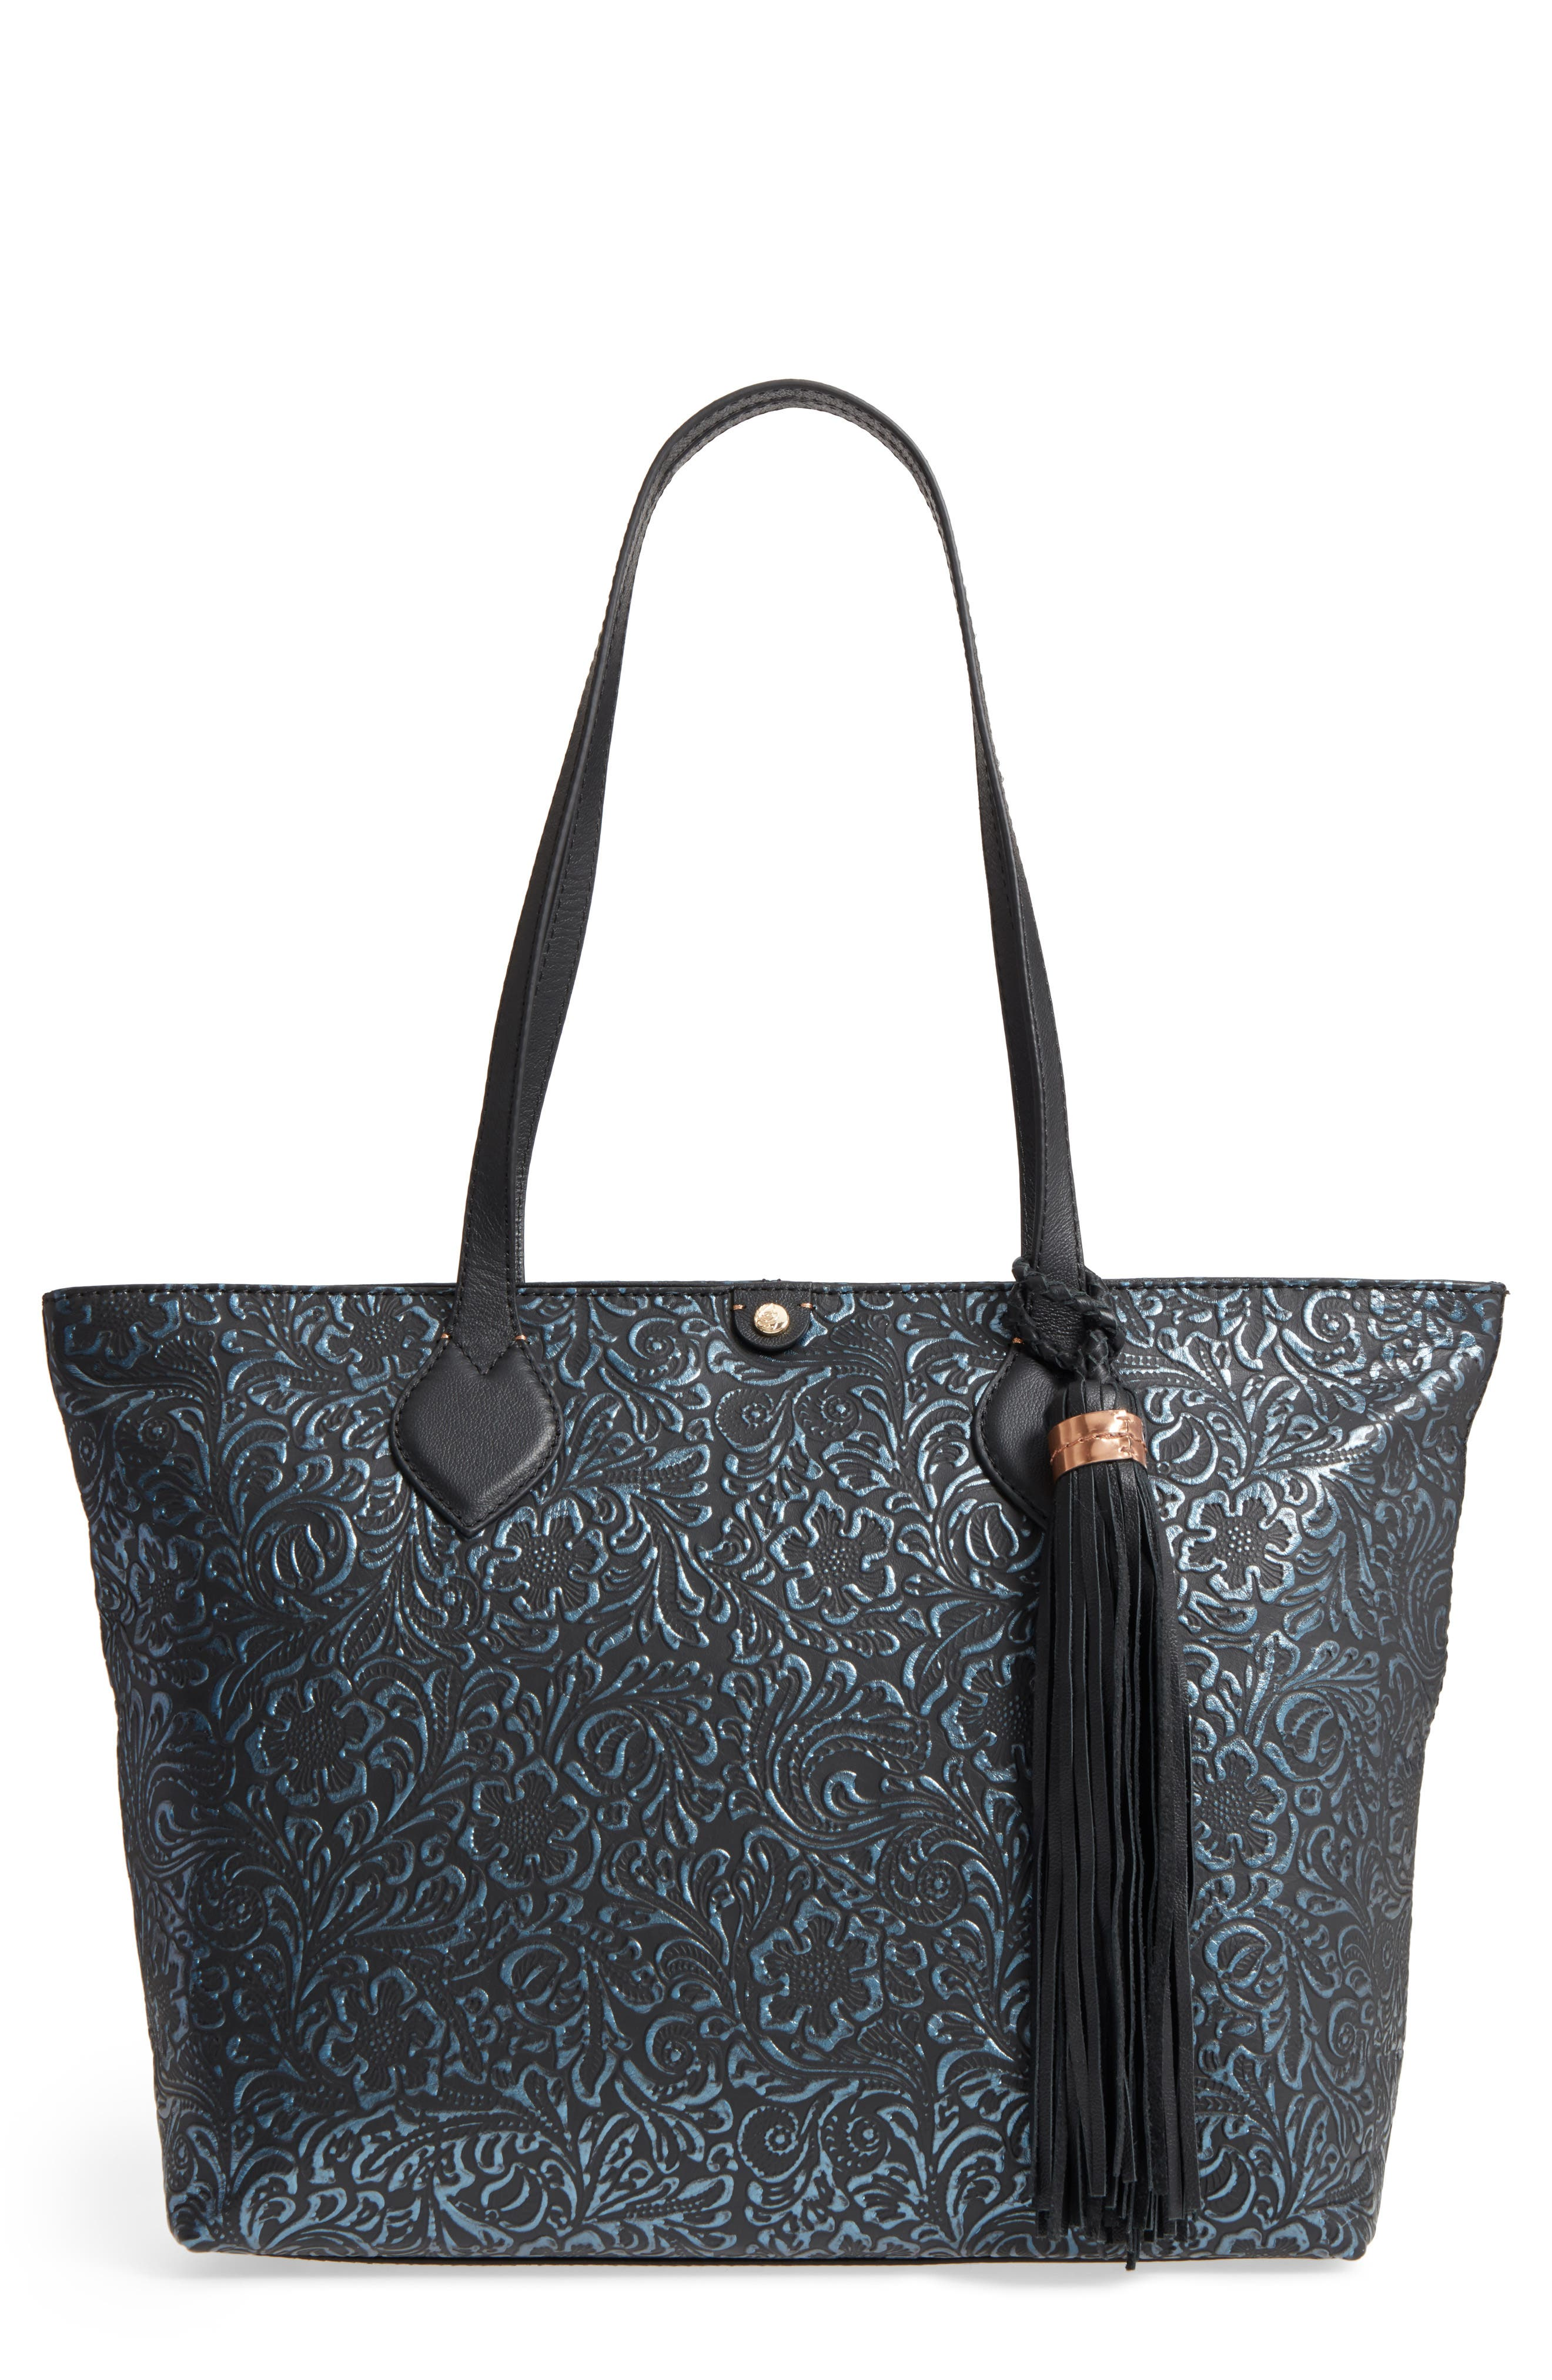 Barbados Leather Tote,                             Main thumbnail 1, color,                             001